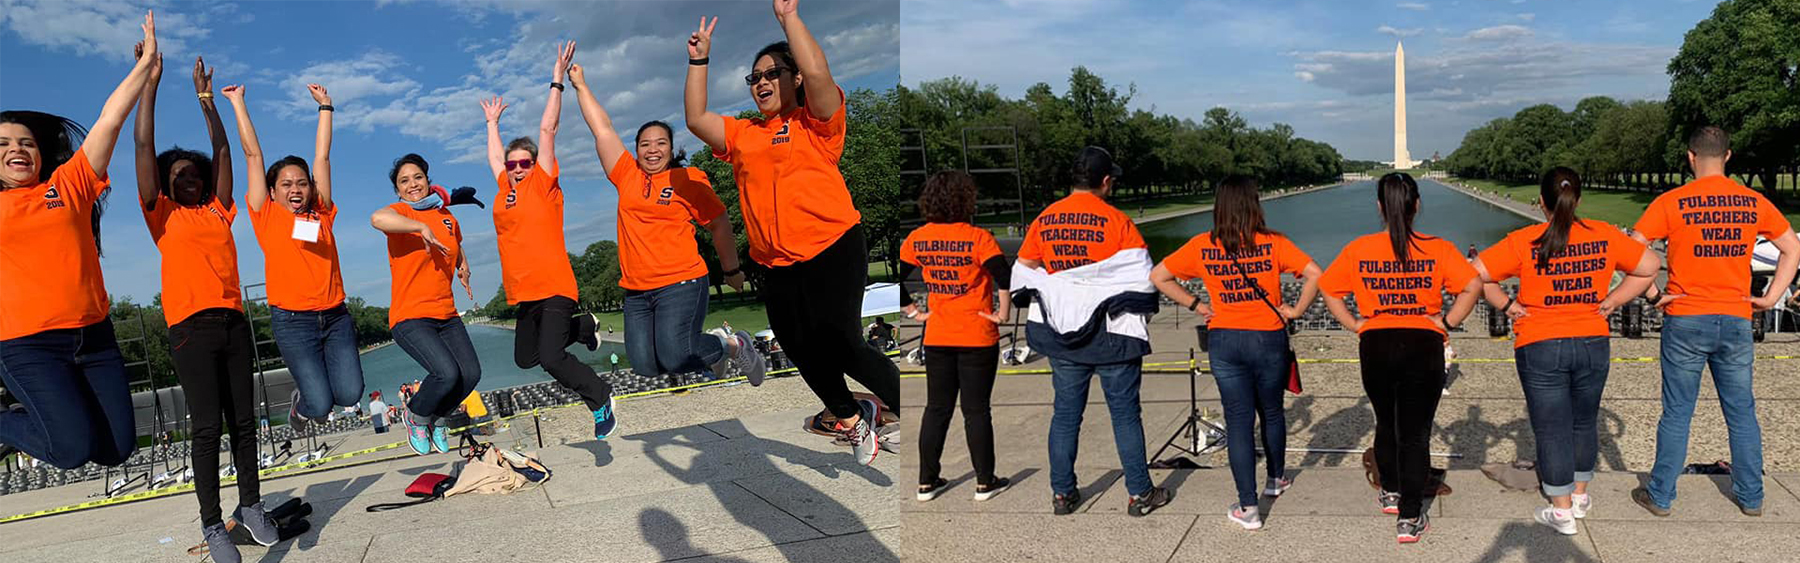 Fulbright DAI teachers on the National Mall in Washington DC in 'Fulbright Teachers Wear Orange' shirts